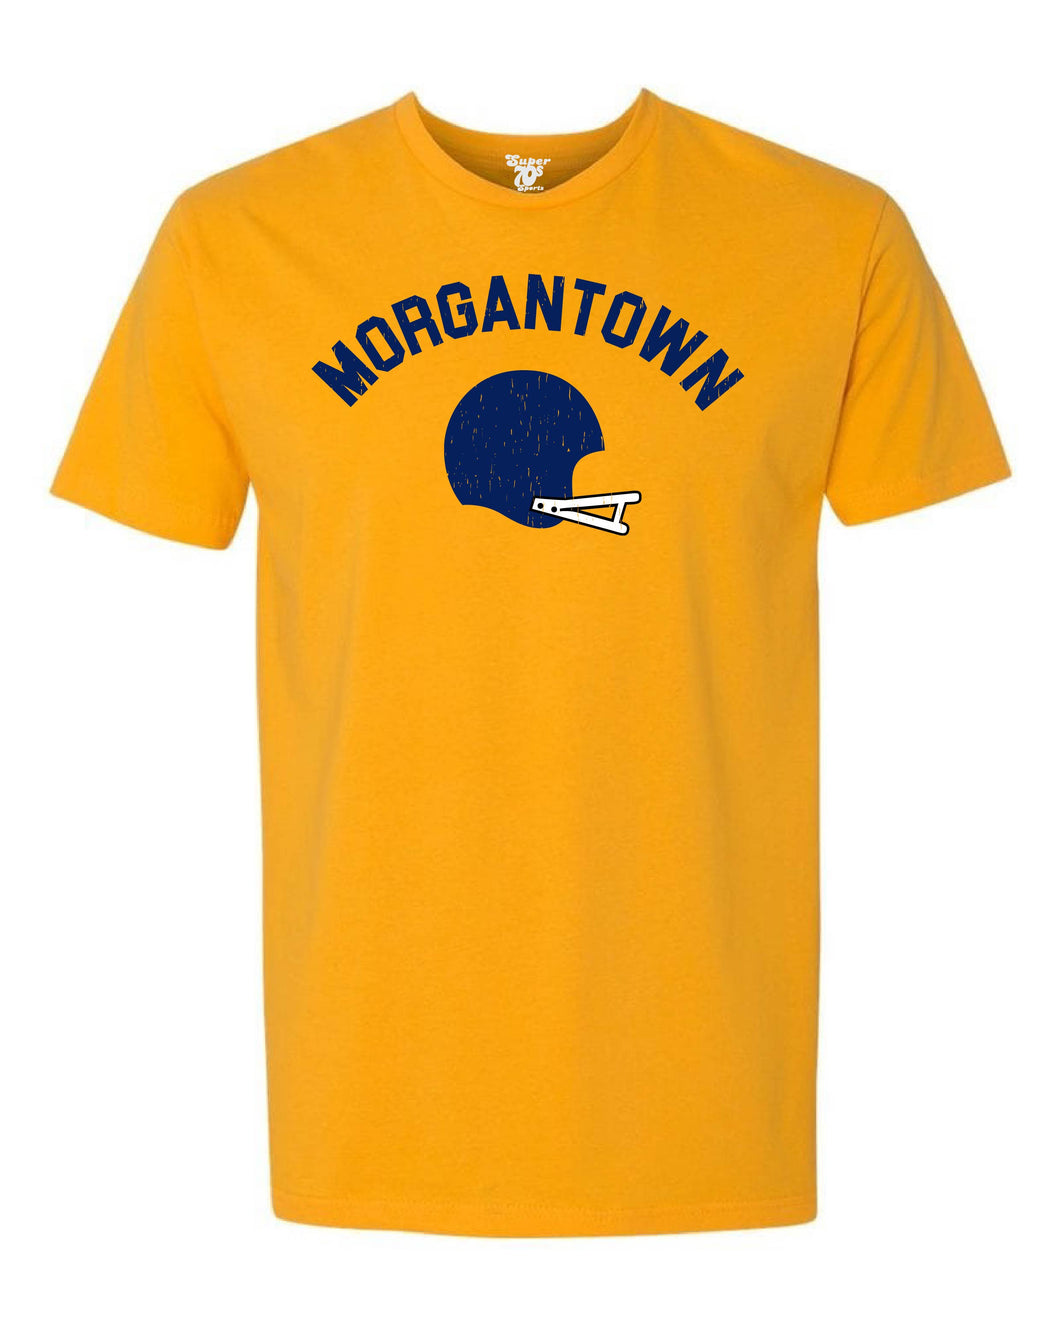 Morgantown Football Tee